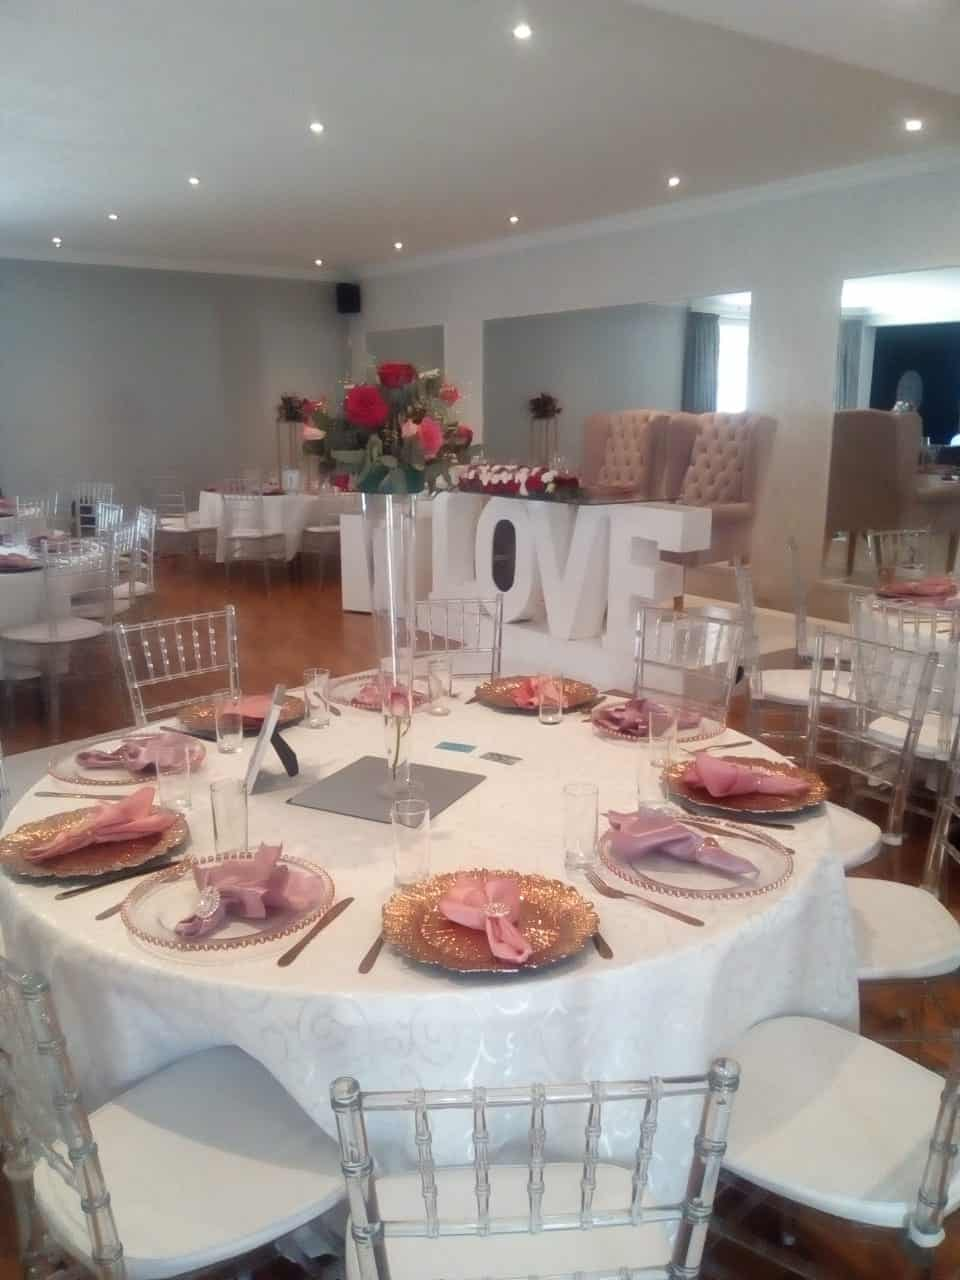 White Love sign with 2 chairs for the bride and groom